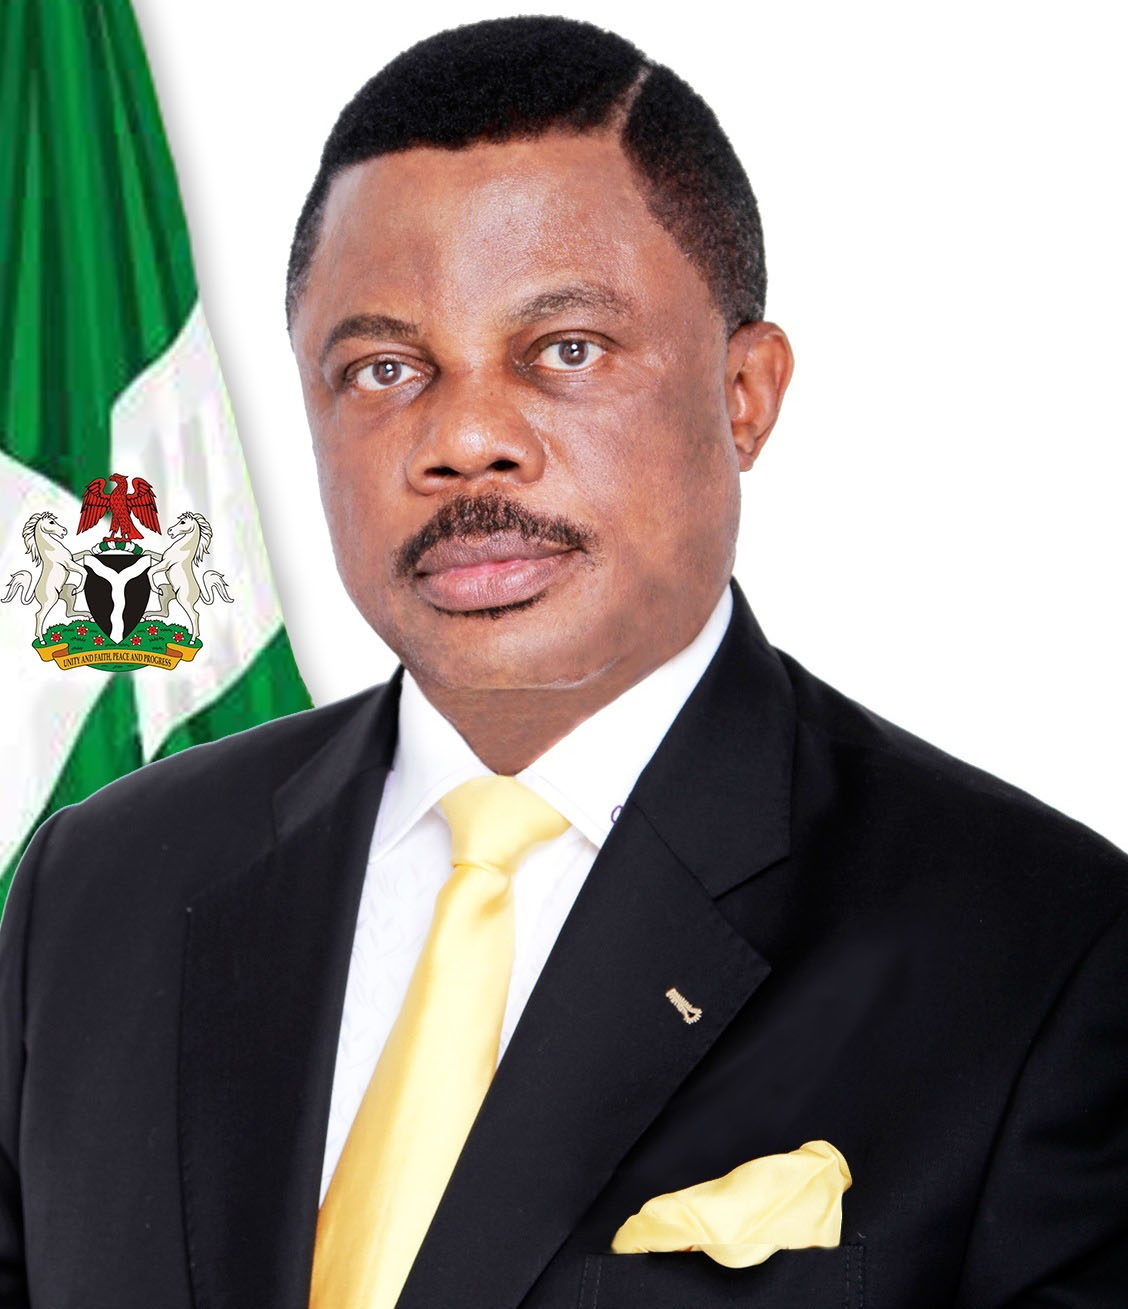 •Governor Willie Obiano of Anambra State